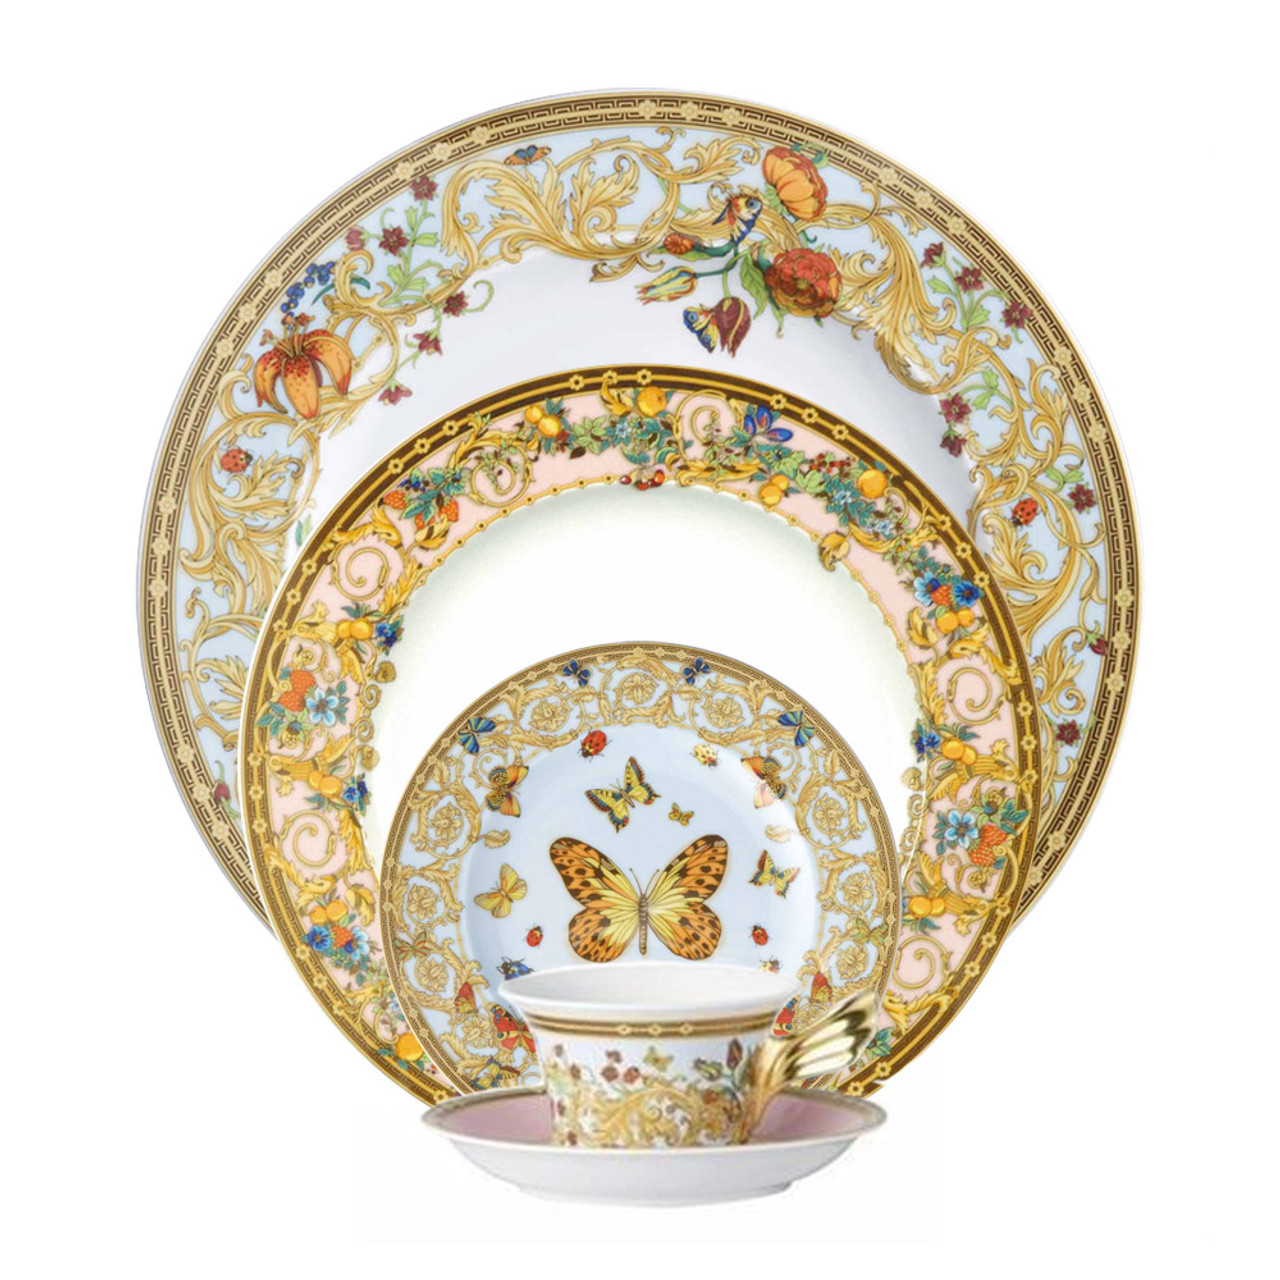 5 Piece Place Setting (5 Pps)   Butterfly Garden